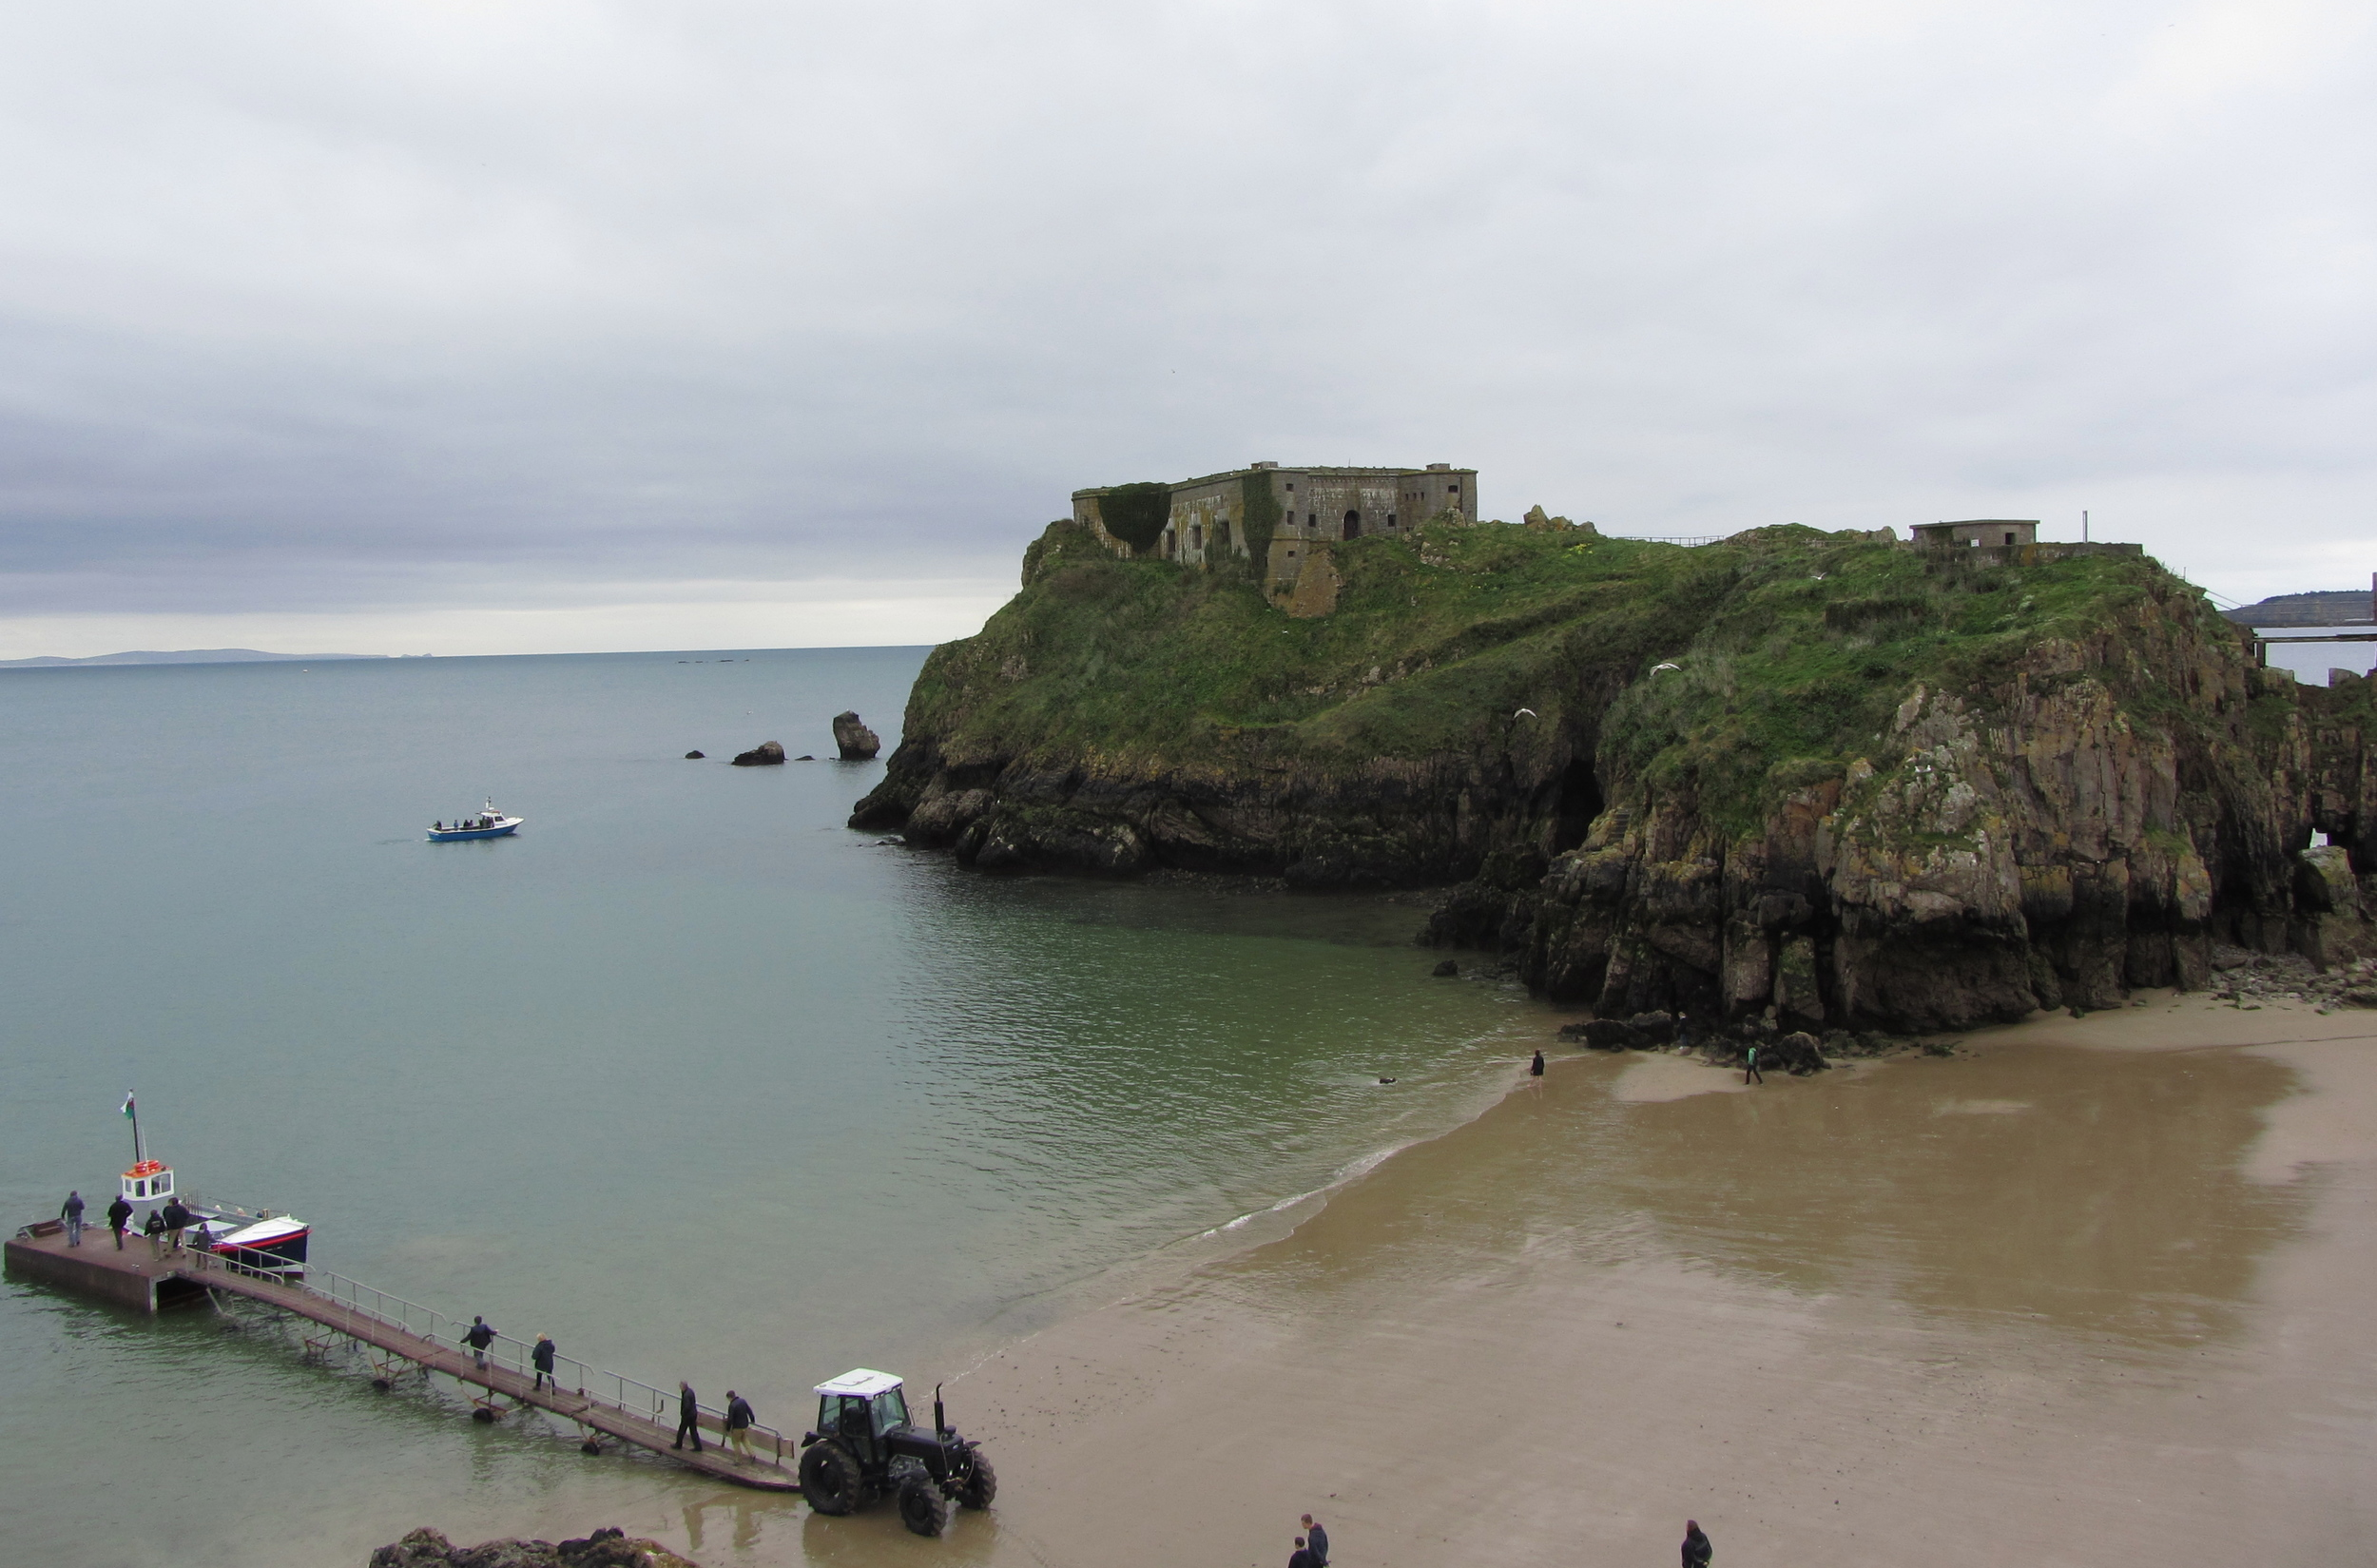 The sea at Tenby